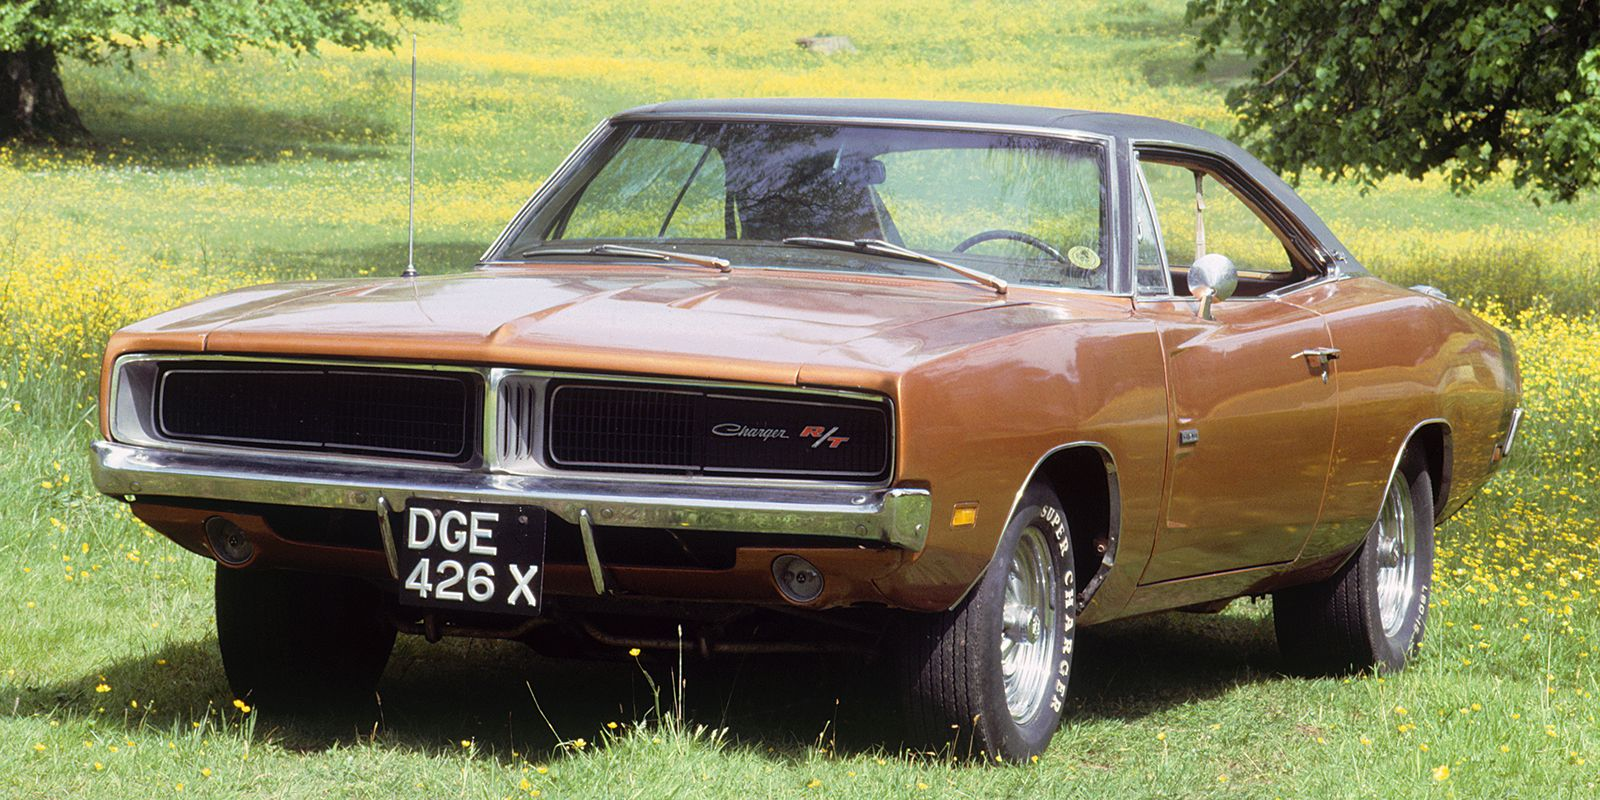 1969 Dodge Charger. Artist Unknown. (Photo by National Motor Museum/Heritage Images/Getty Images)